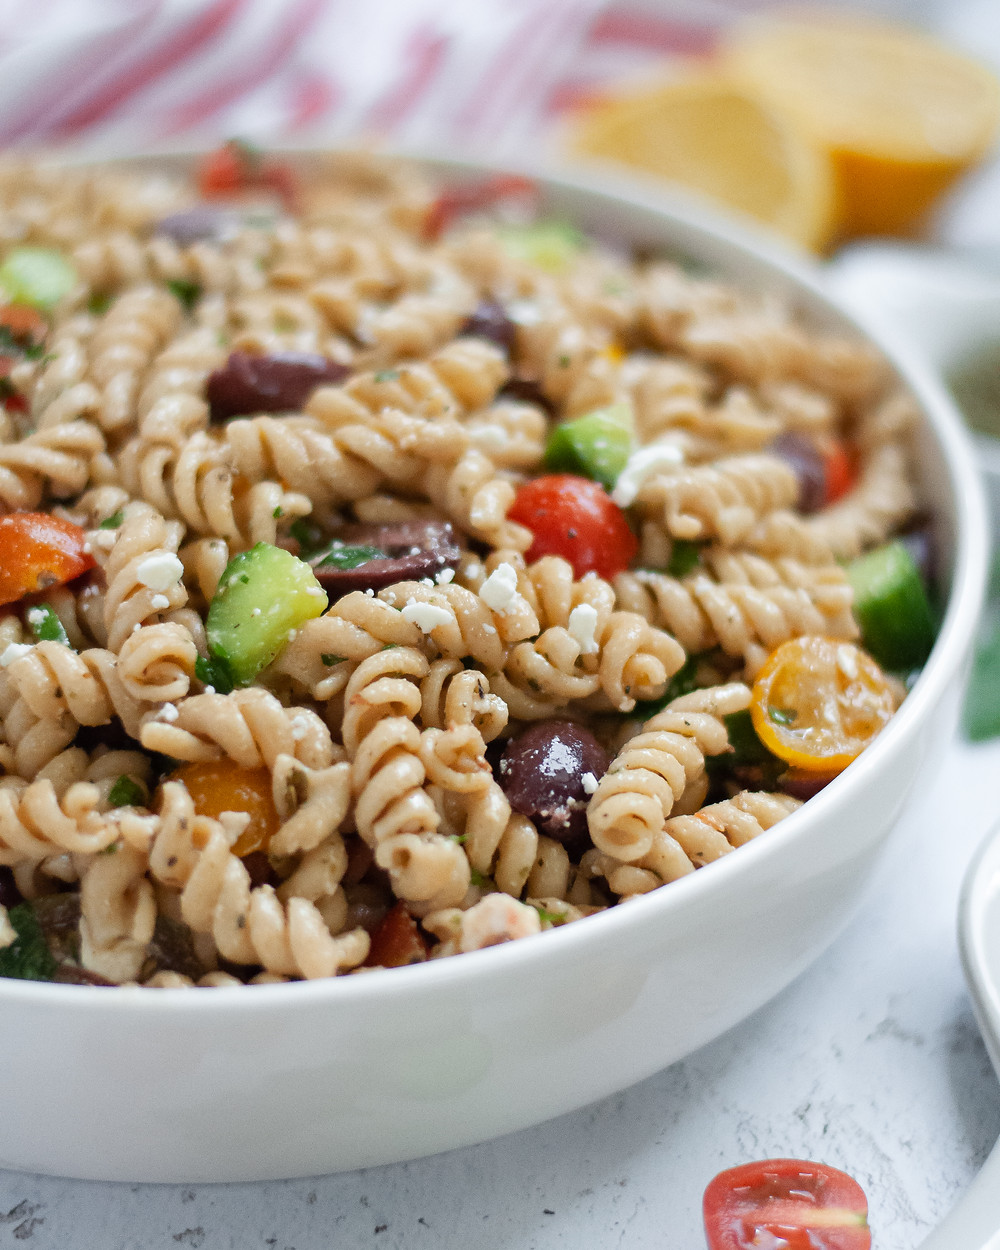 Close up of a serving bowl filled with pasta salad